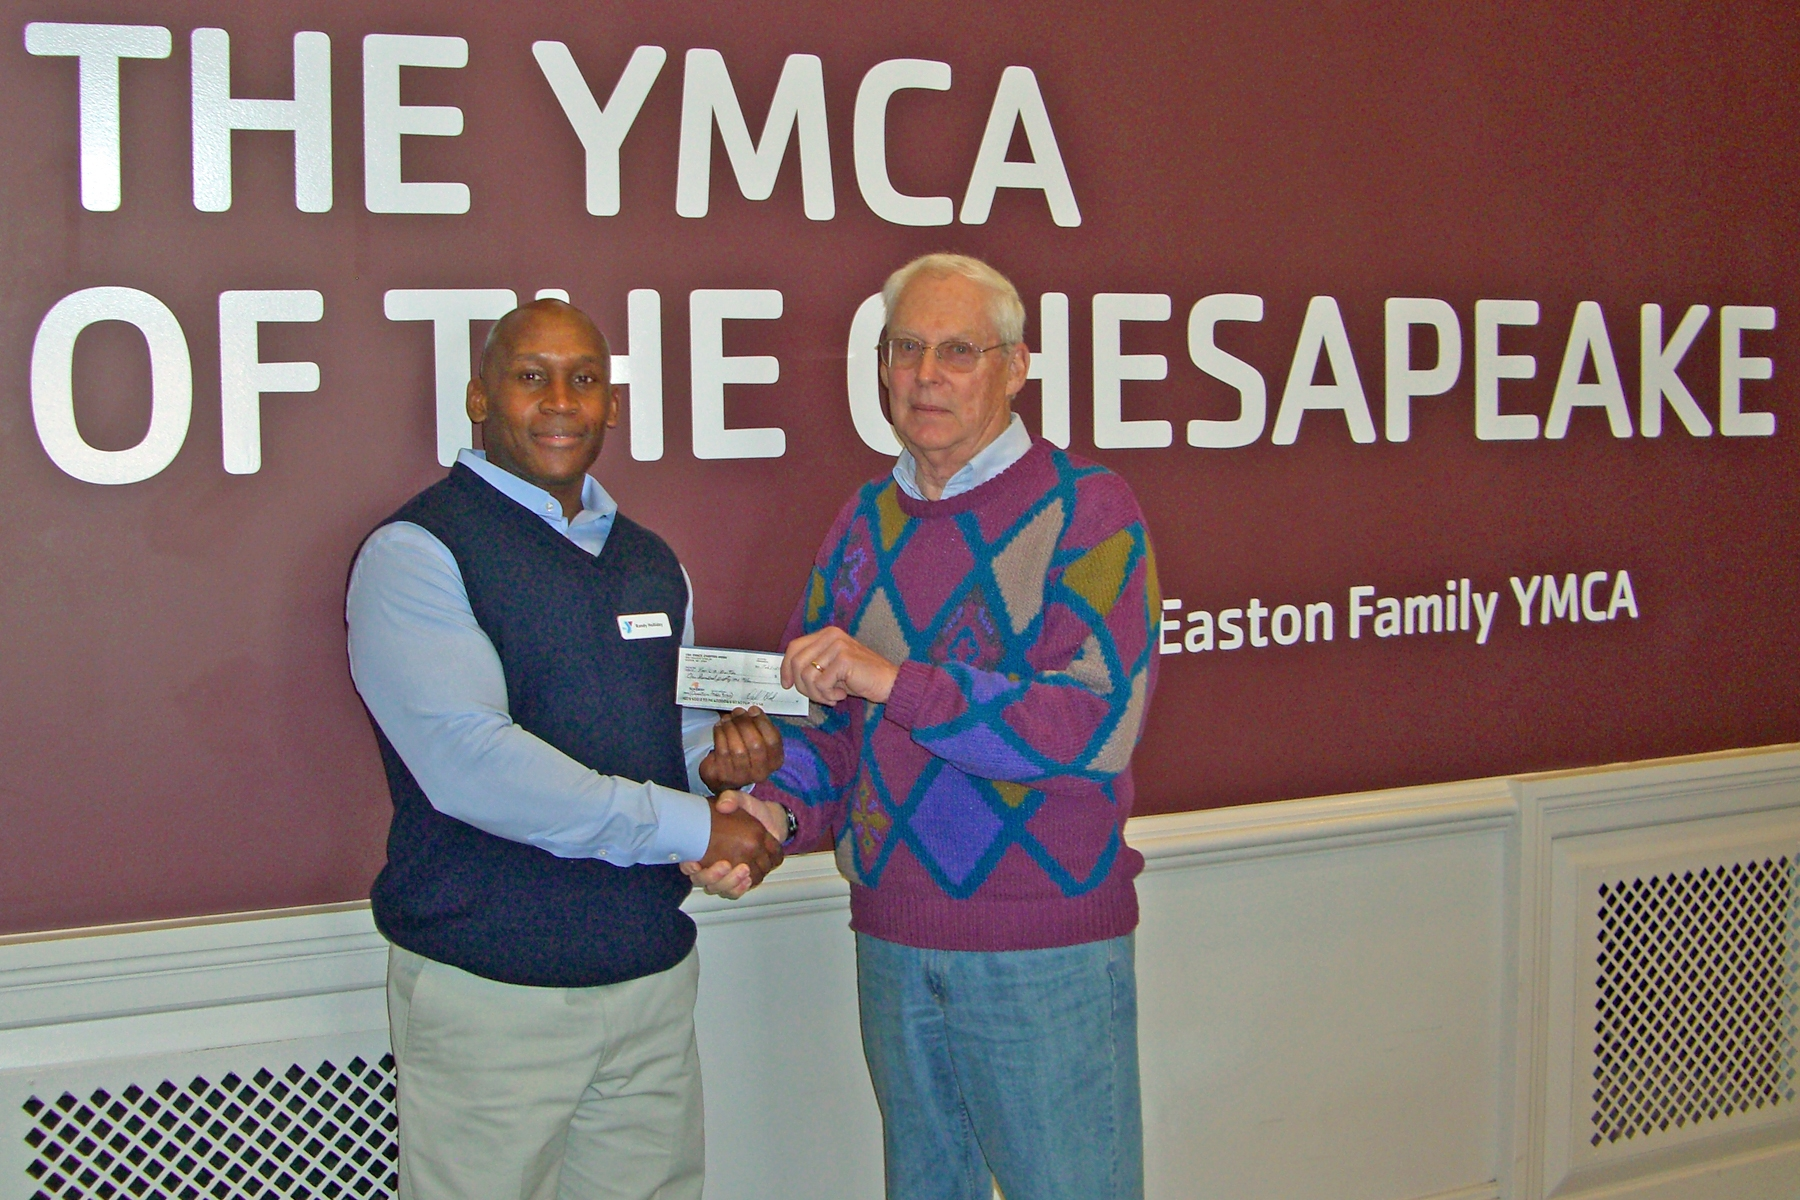 USA Dance President George Drake donating money to the YMCA in Easton